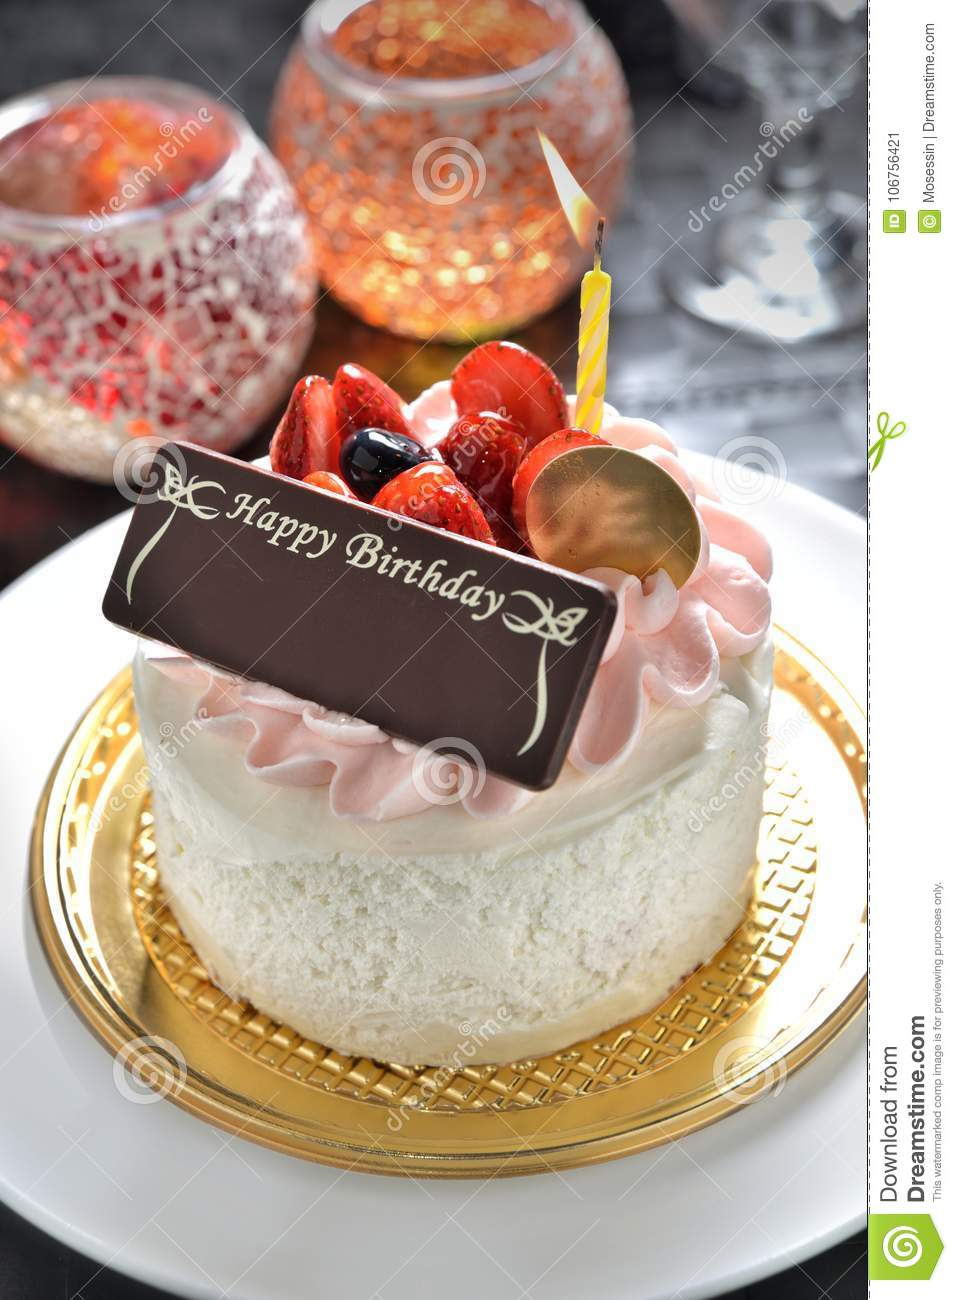 Happy Birthday Cake Images With Name Raja 21th Blouse Wearing